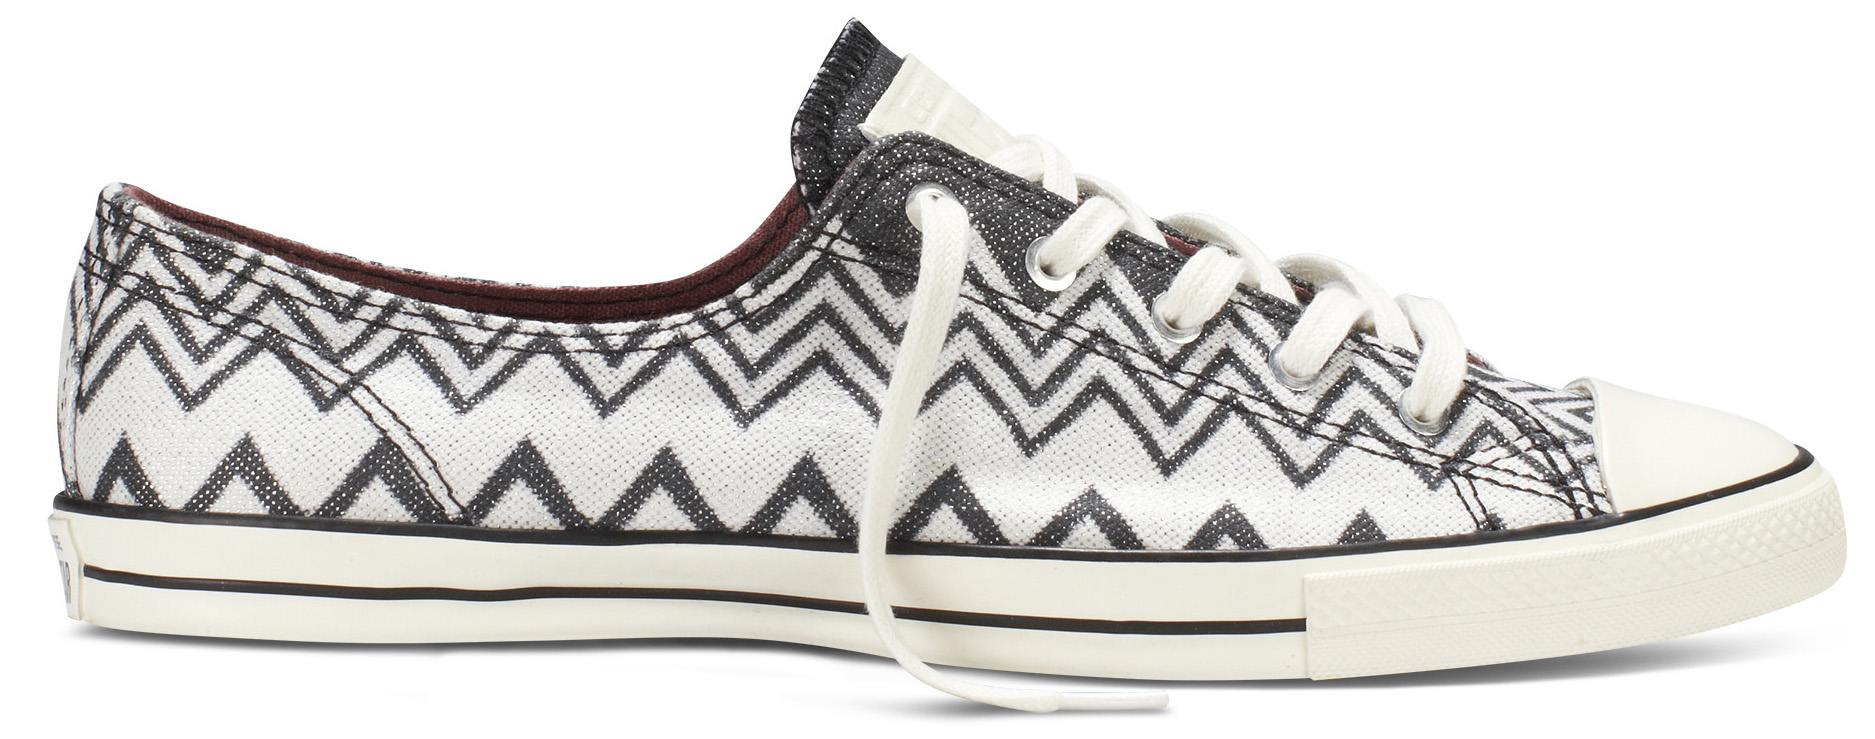 Converse Chuck Taylor All Star Missoni Exclusively for Nordstrom –  Suggested Retail  95 50be6de8d